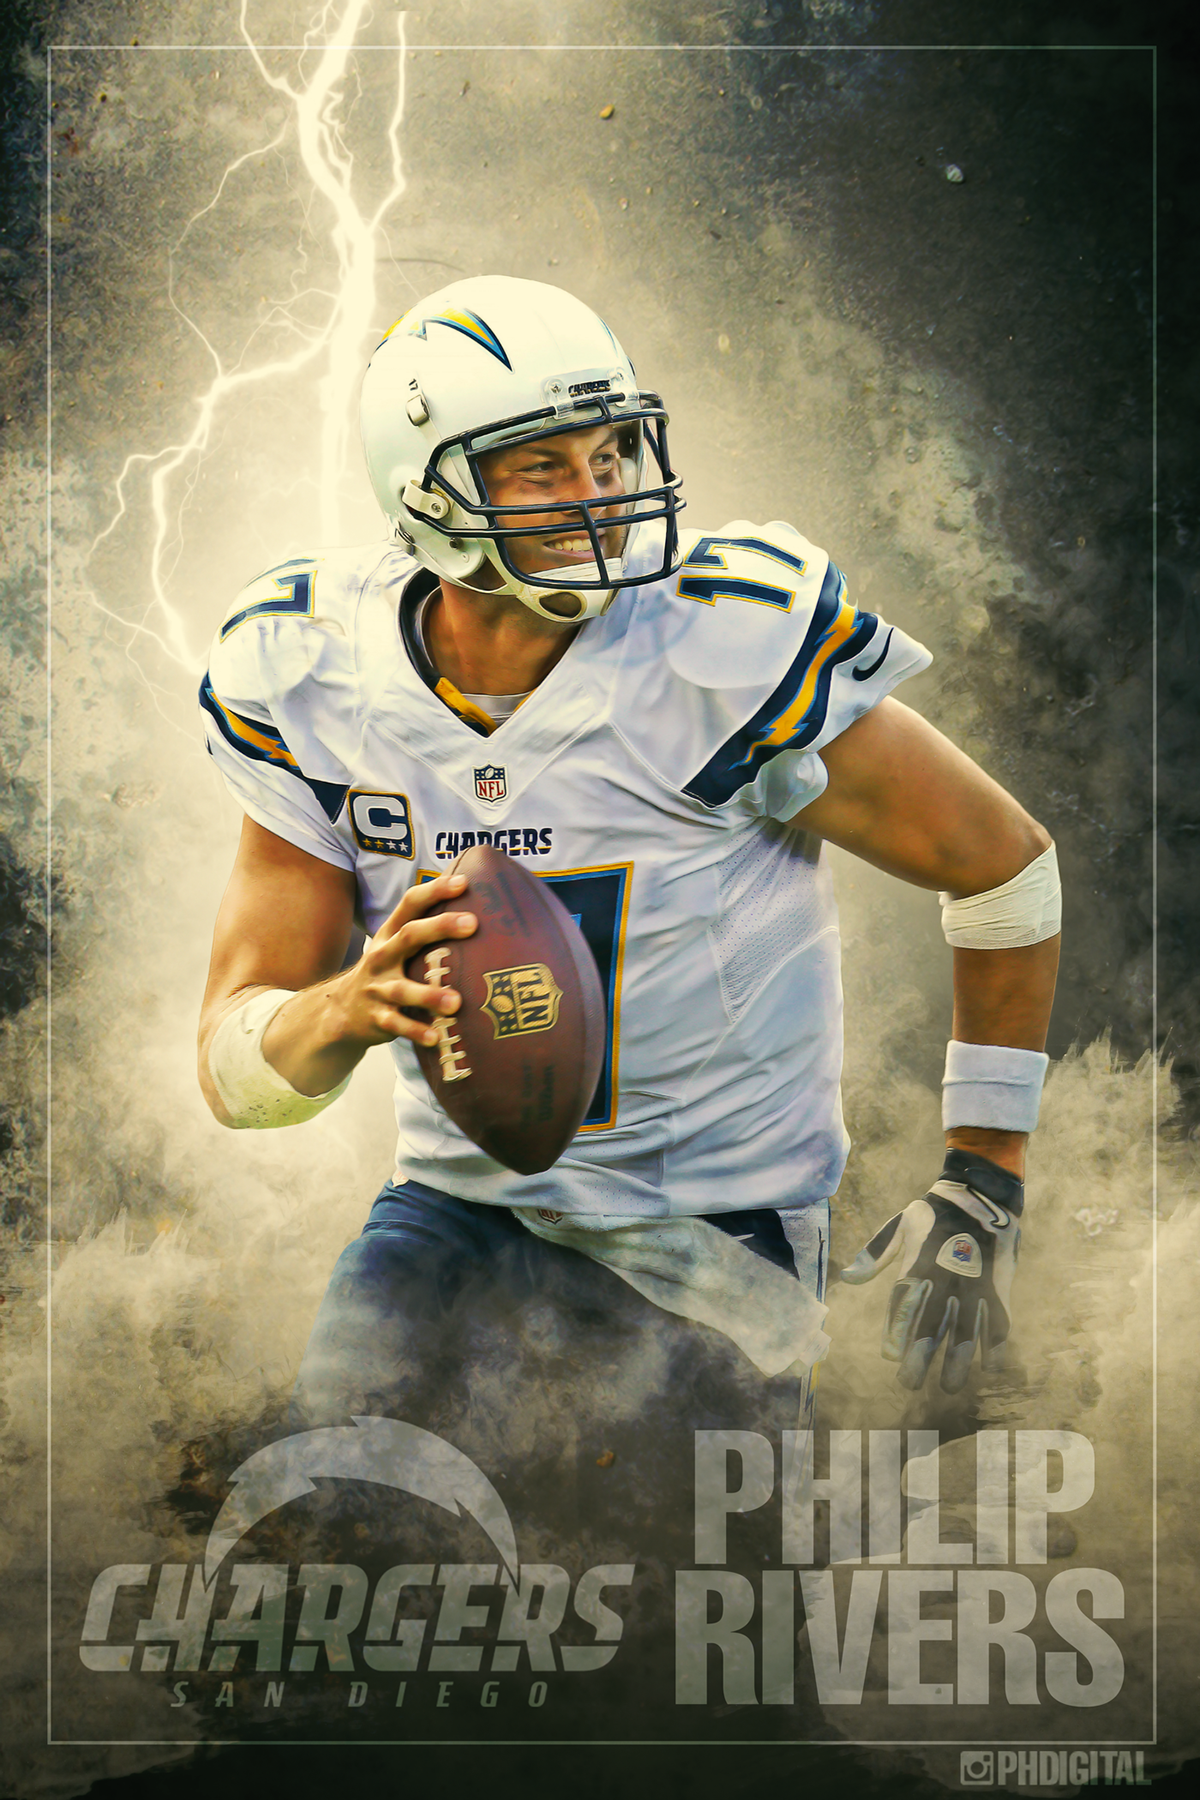 San Diego Chargers Philip Rivers Poster 24 X 36 On Behance